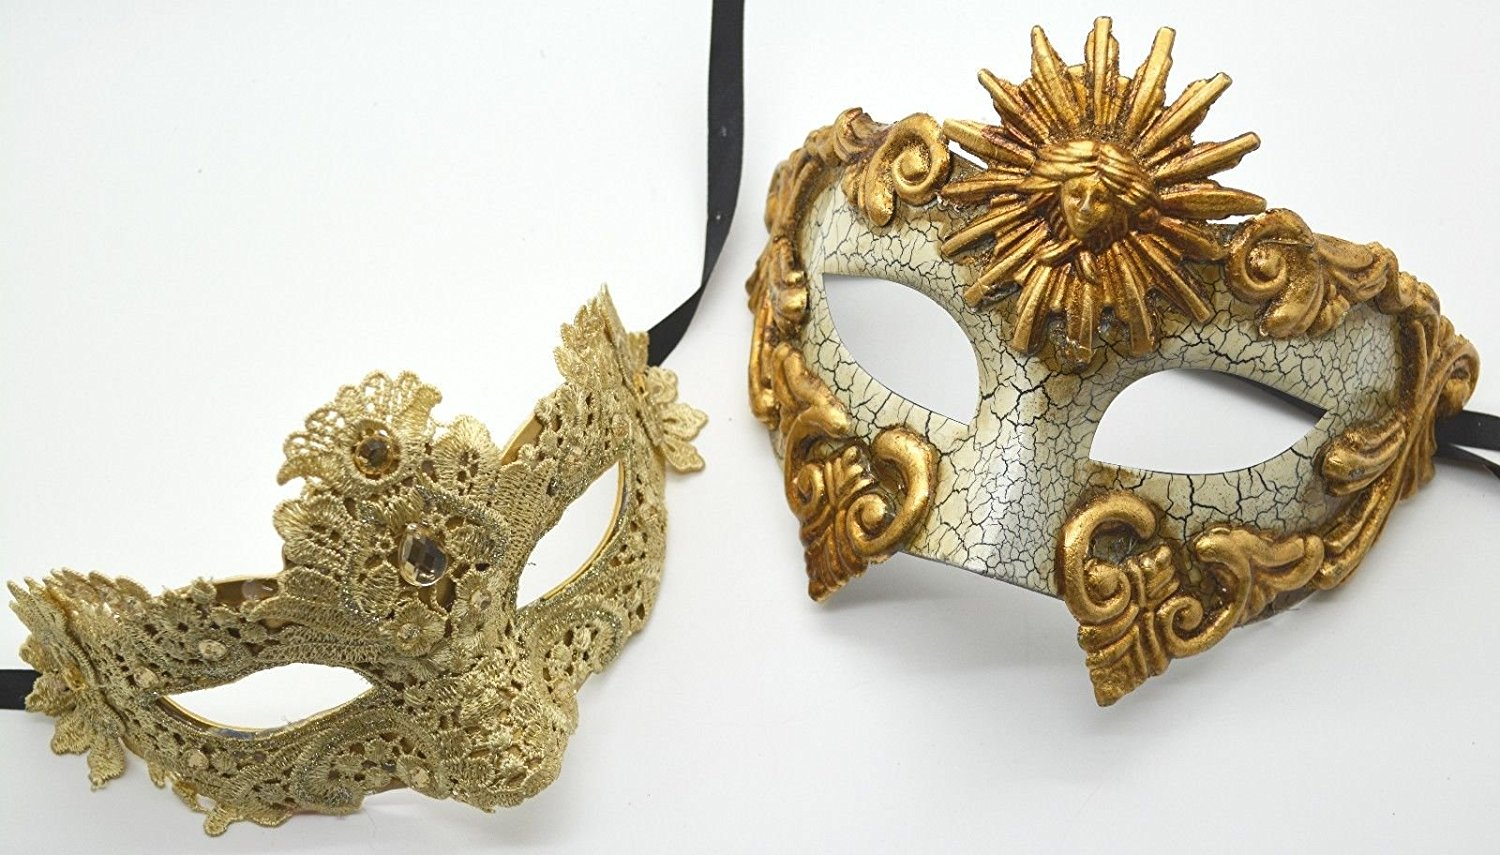 Roman Greek God Goddess Set - His & Hers Sexy Lace Masquerade Masks Antique Gold